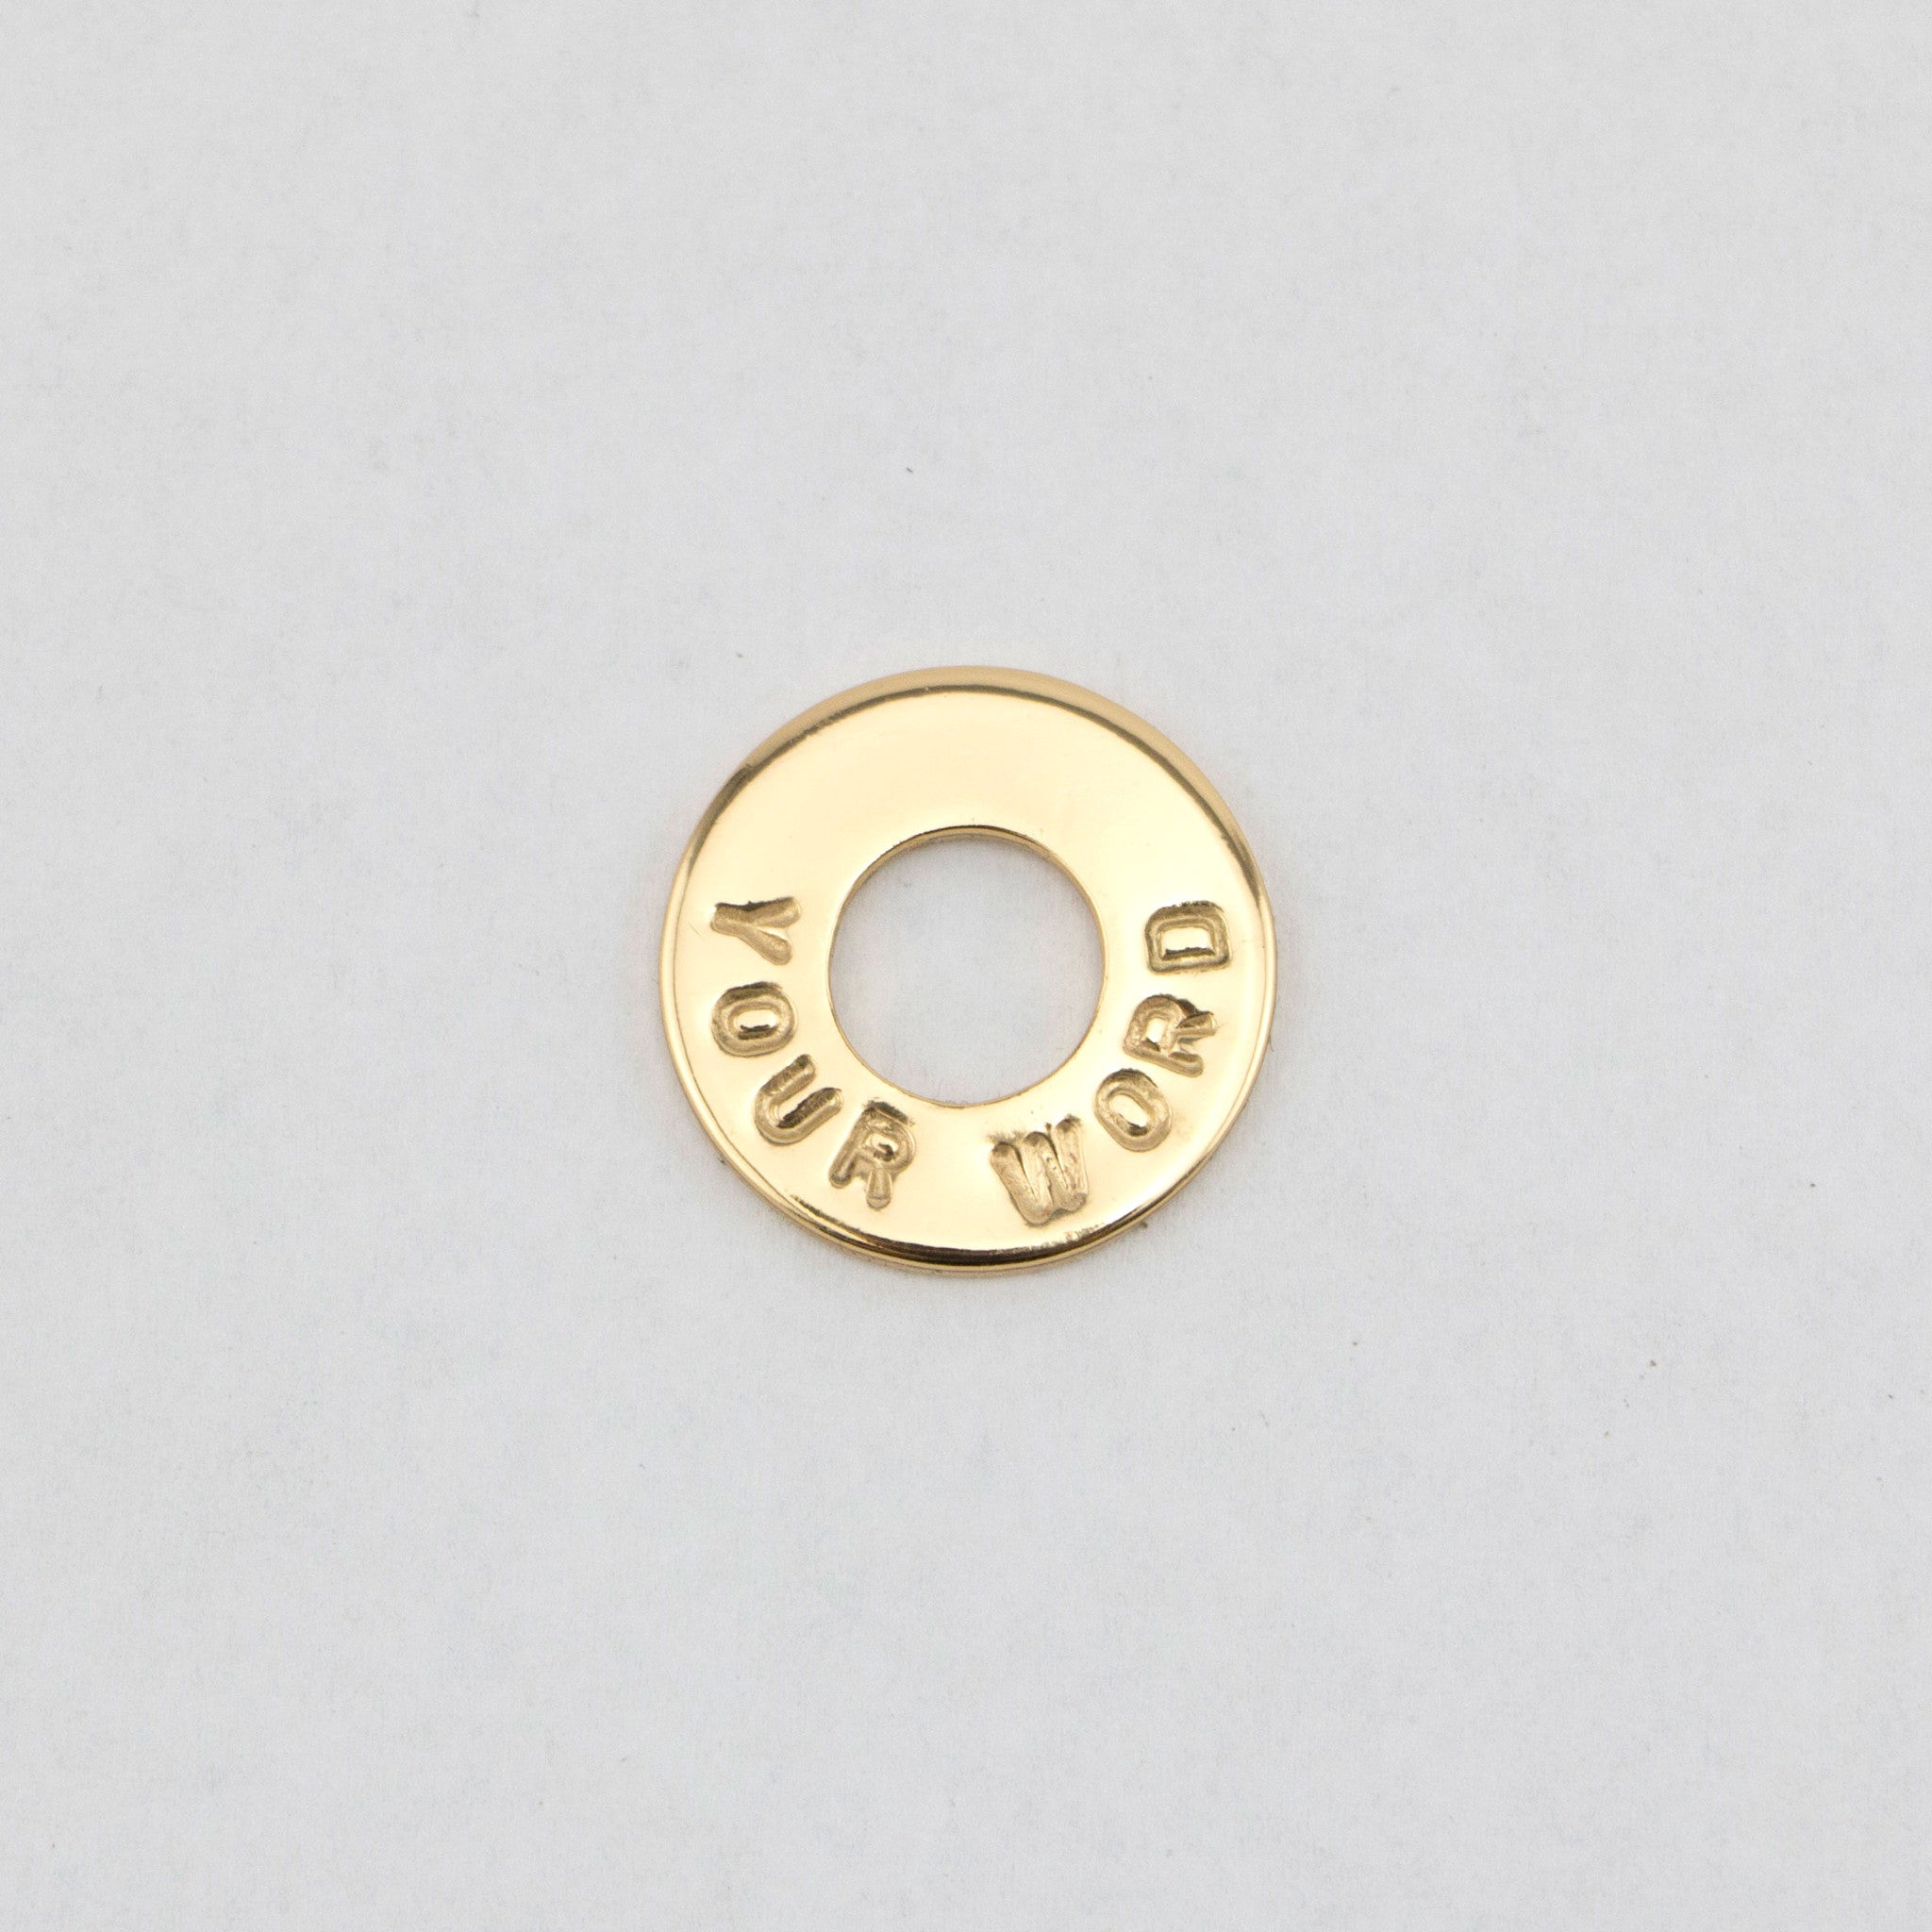 MyIntent Custom Token in Gold